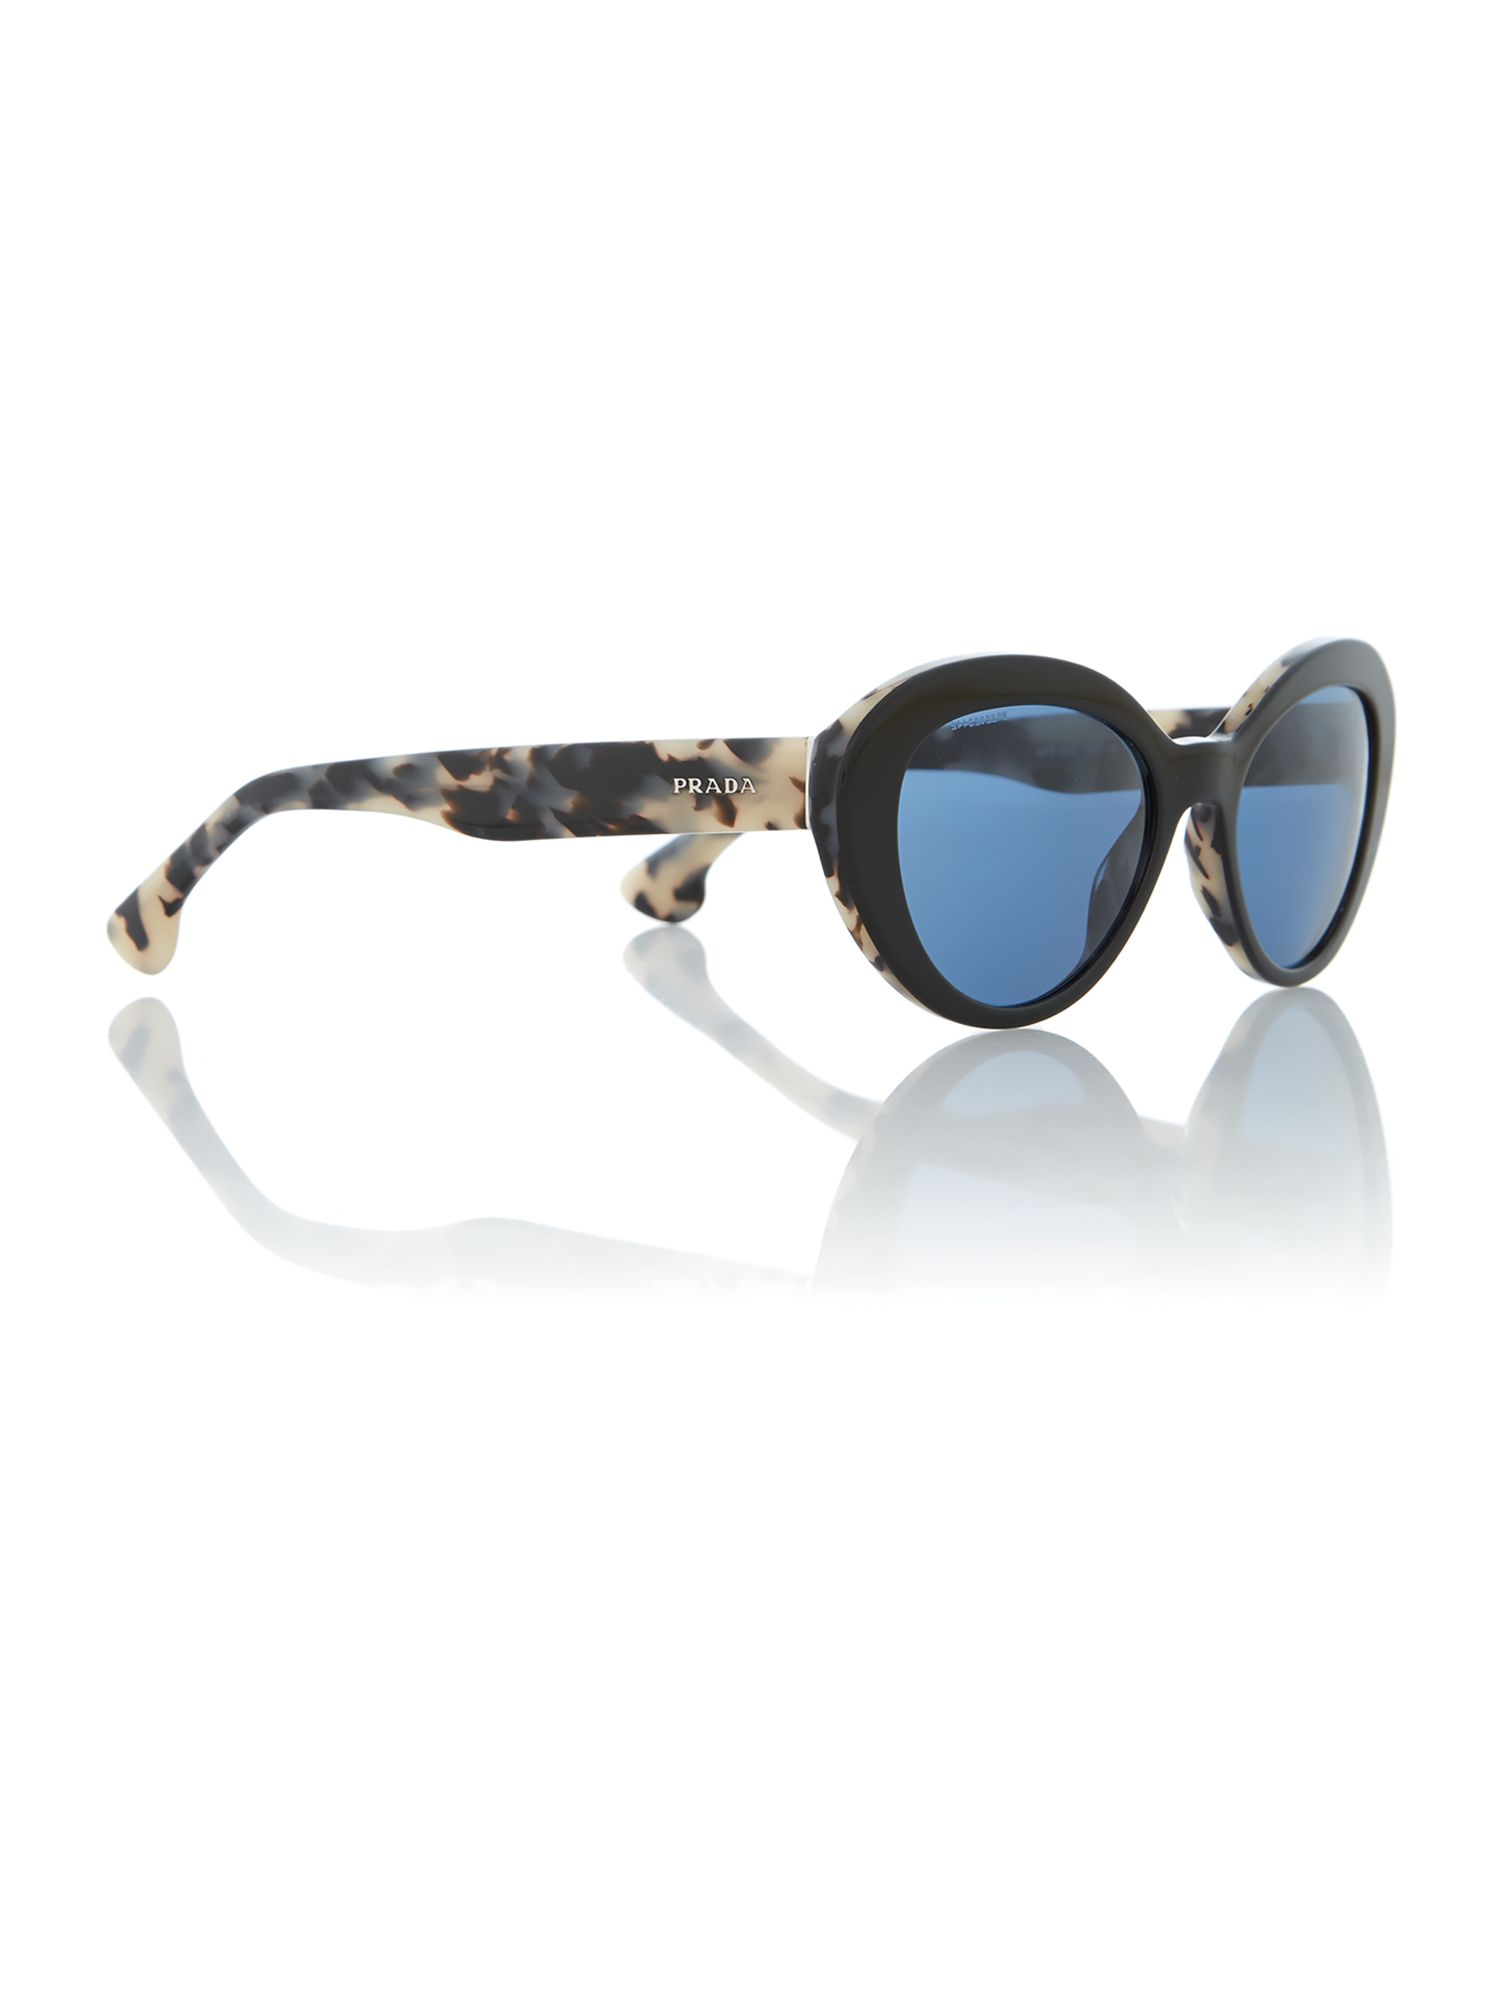 Black/white havana oval sunglasses